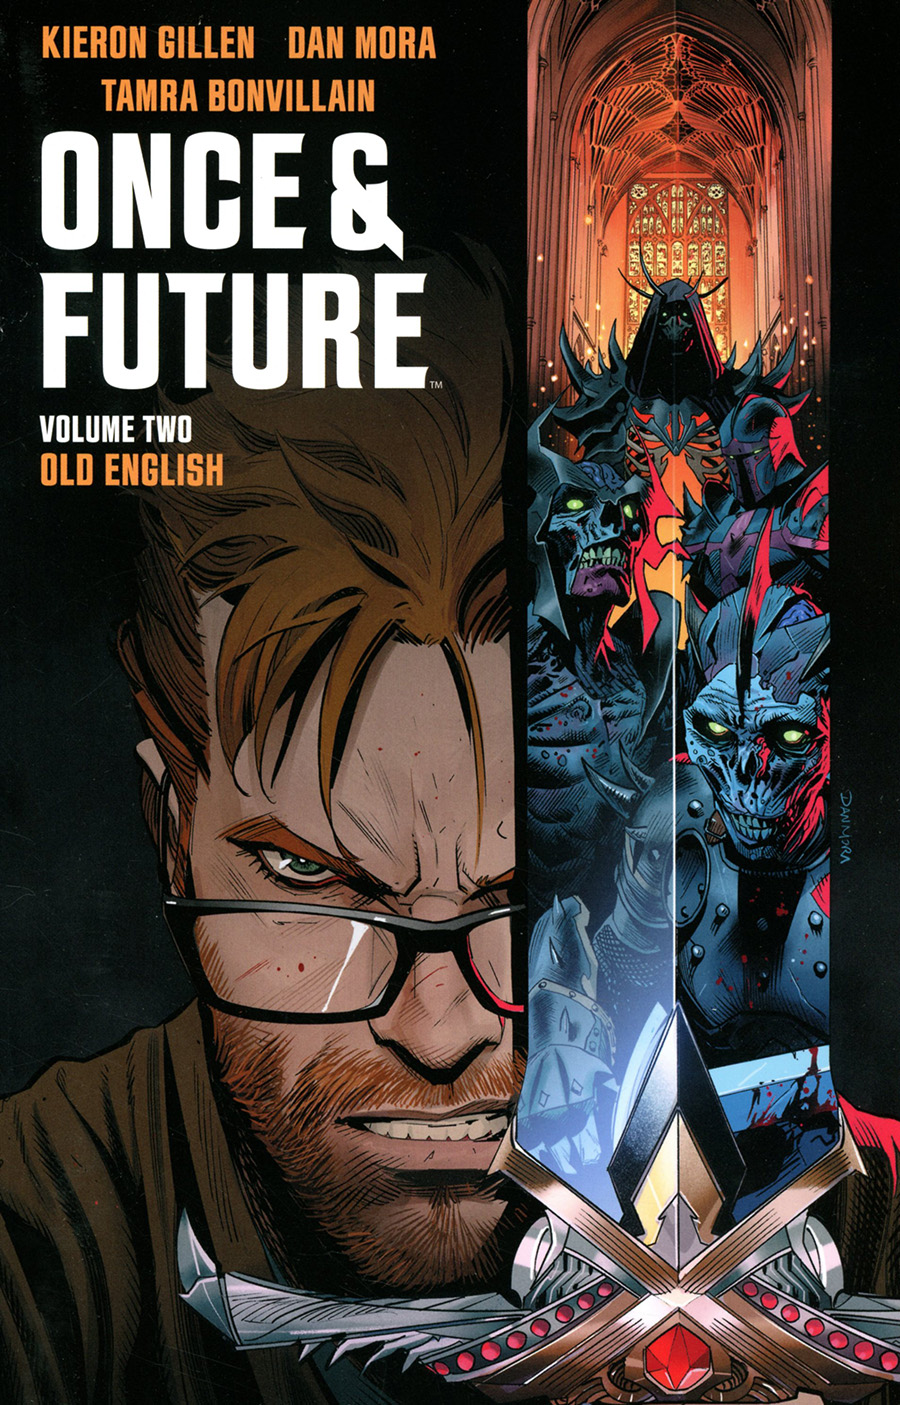 Once & Future Vol 2 TP